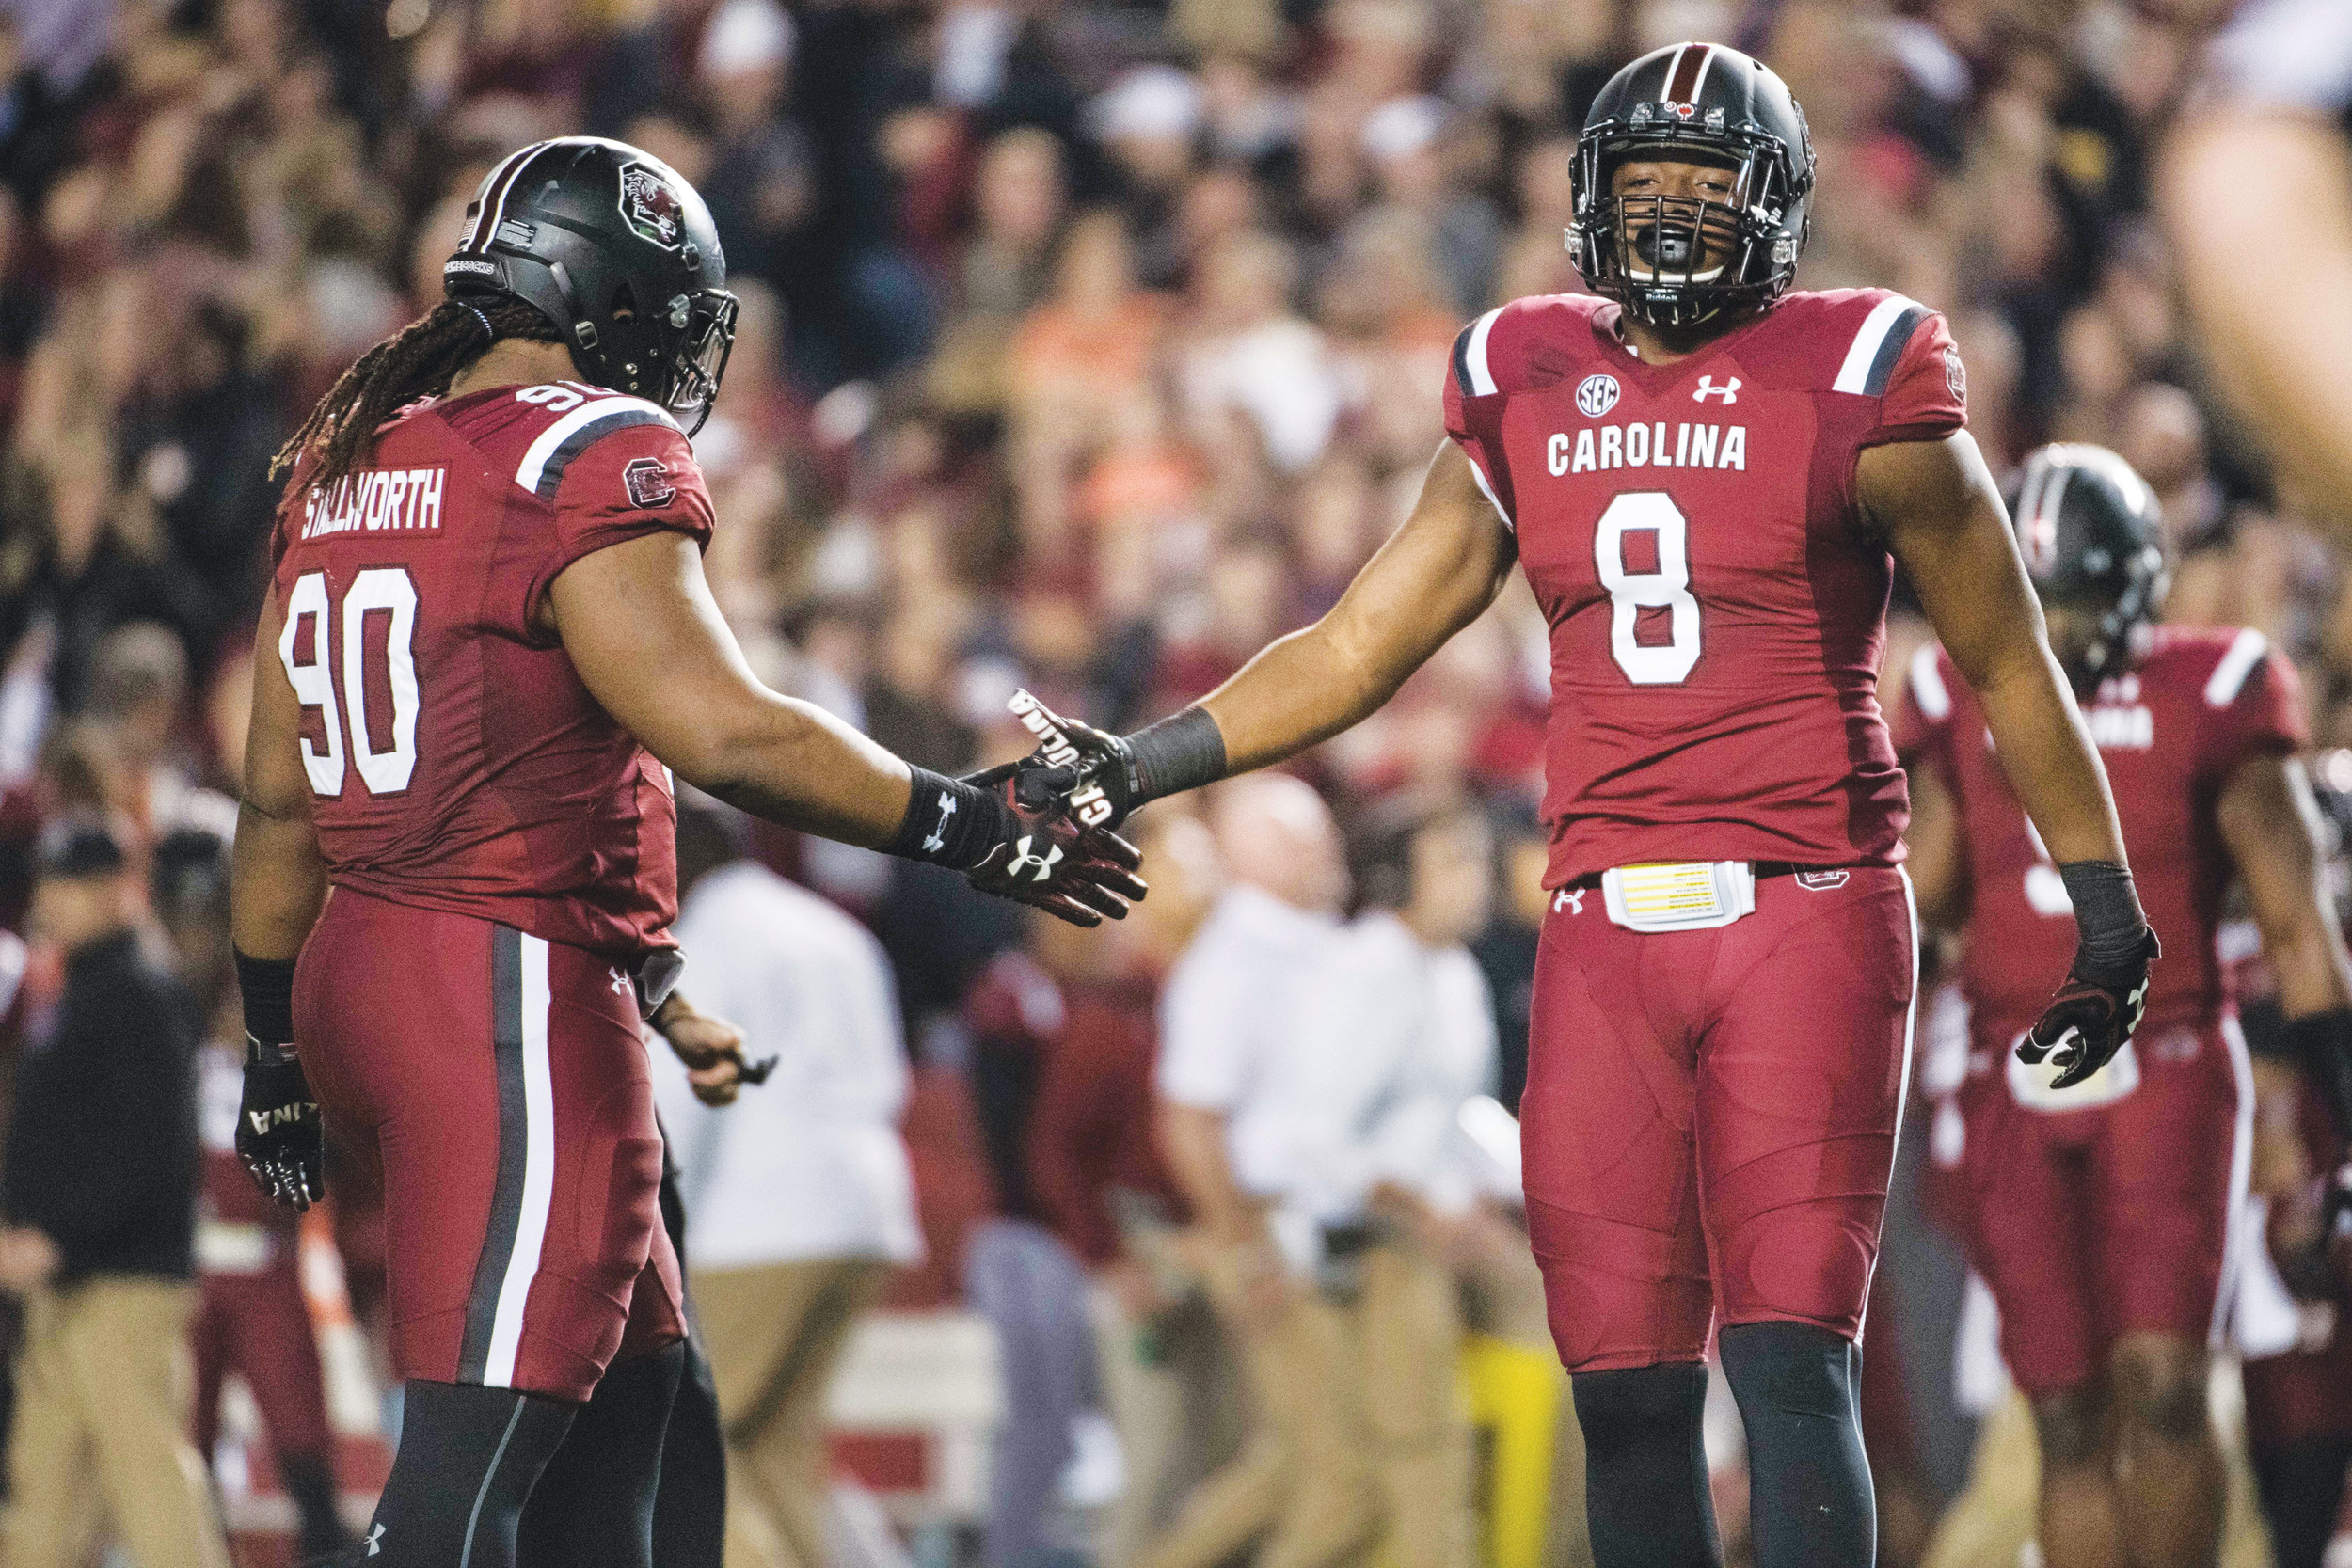 South Carolina defensive tackle Taylor Stallworth (90) and defensive end D.J. Wonnum have been leaders on a much improved Gamecock defensive unit. USC is preparing to play Michigan in the Outback Bowl in Tampa, Fla., on Jan. 1.